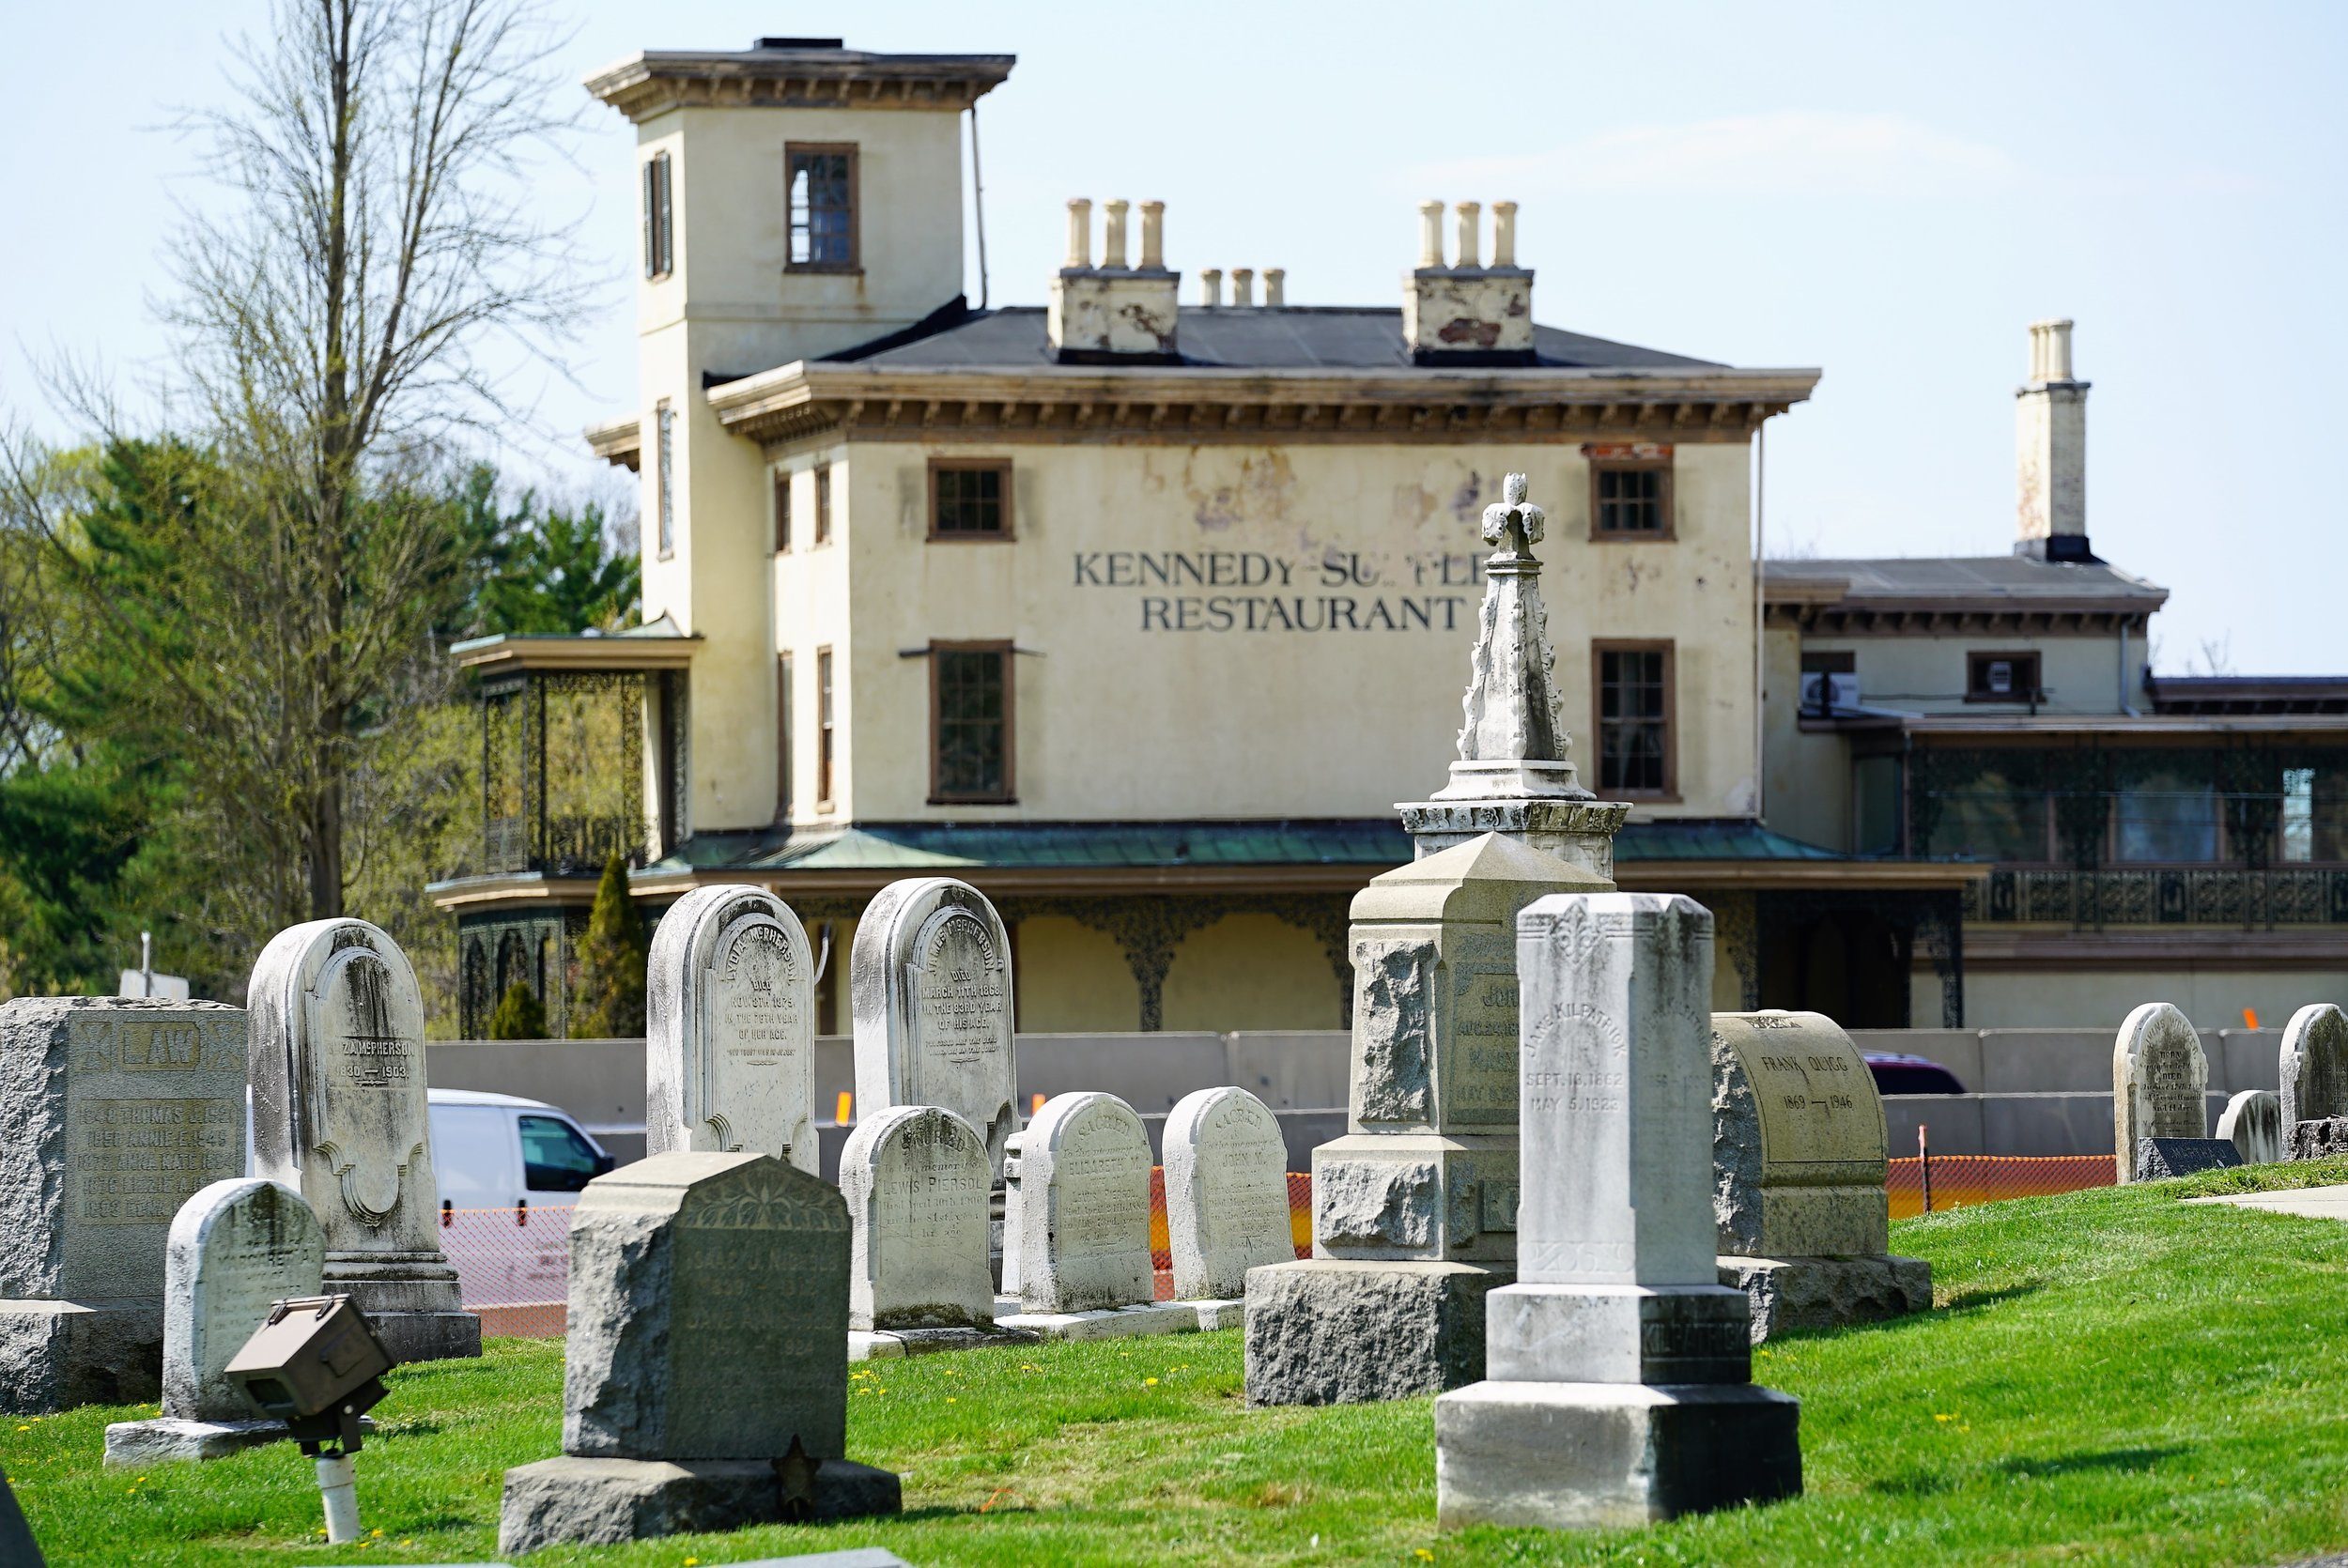 The former Kennedy-Supplee Mansion Restaurant sits across the highway from First Presbyterian Church Of Port Kennedy. The National Park Service is awaiting a new viable tenant to step forward.